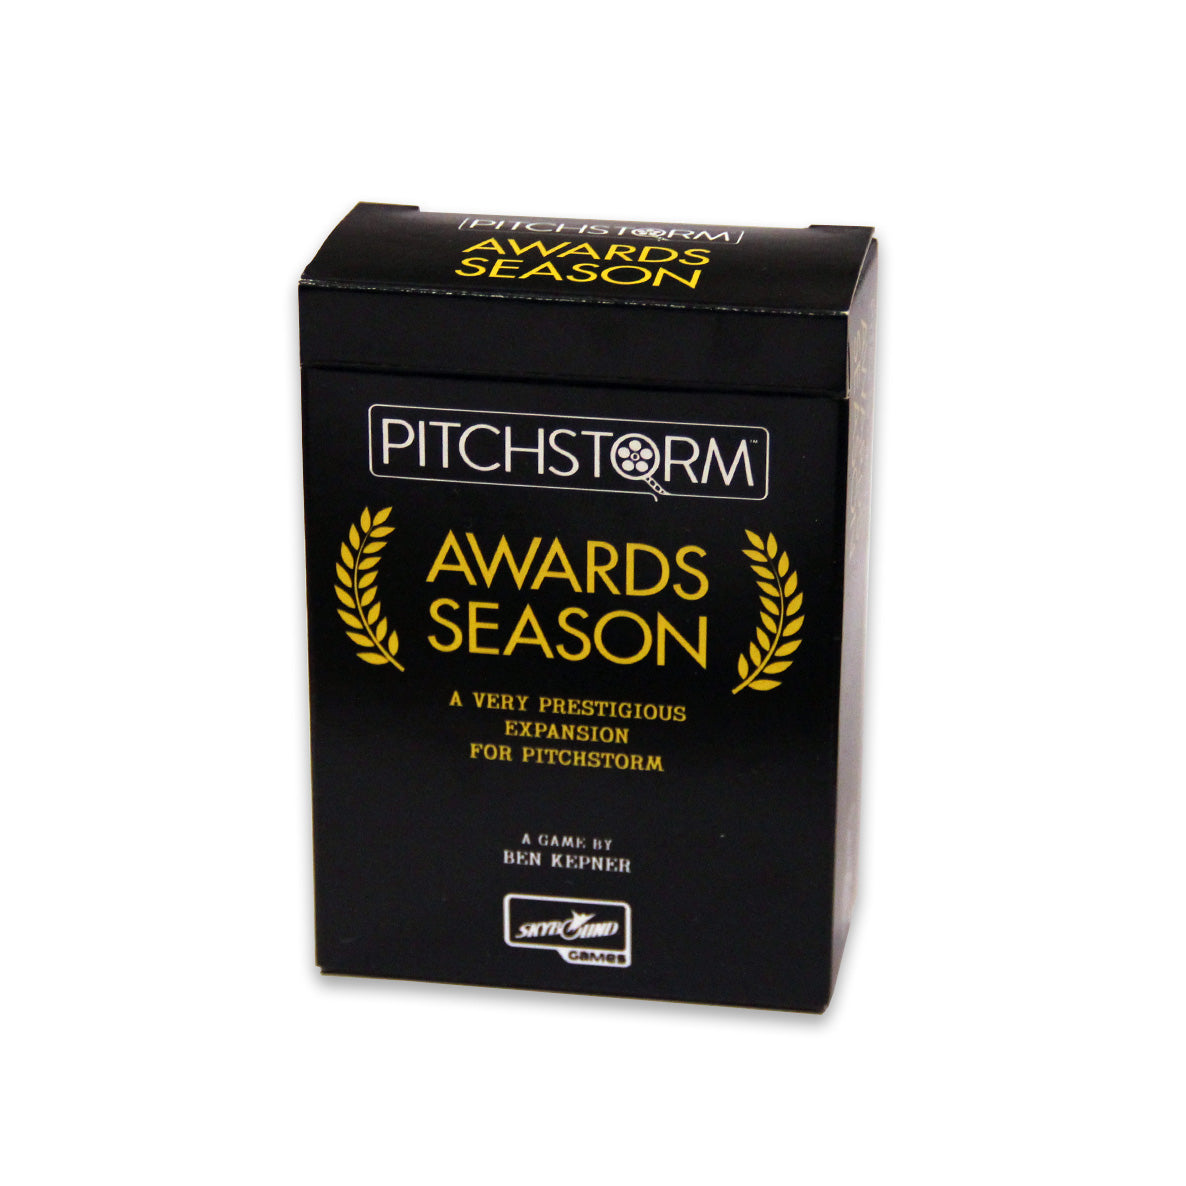 PITCHSTORM Awards Season: A Very Prestigious Expansion